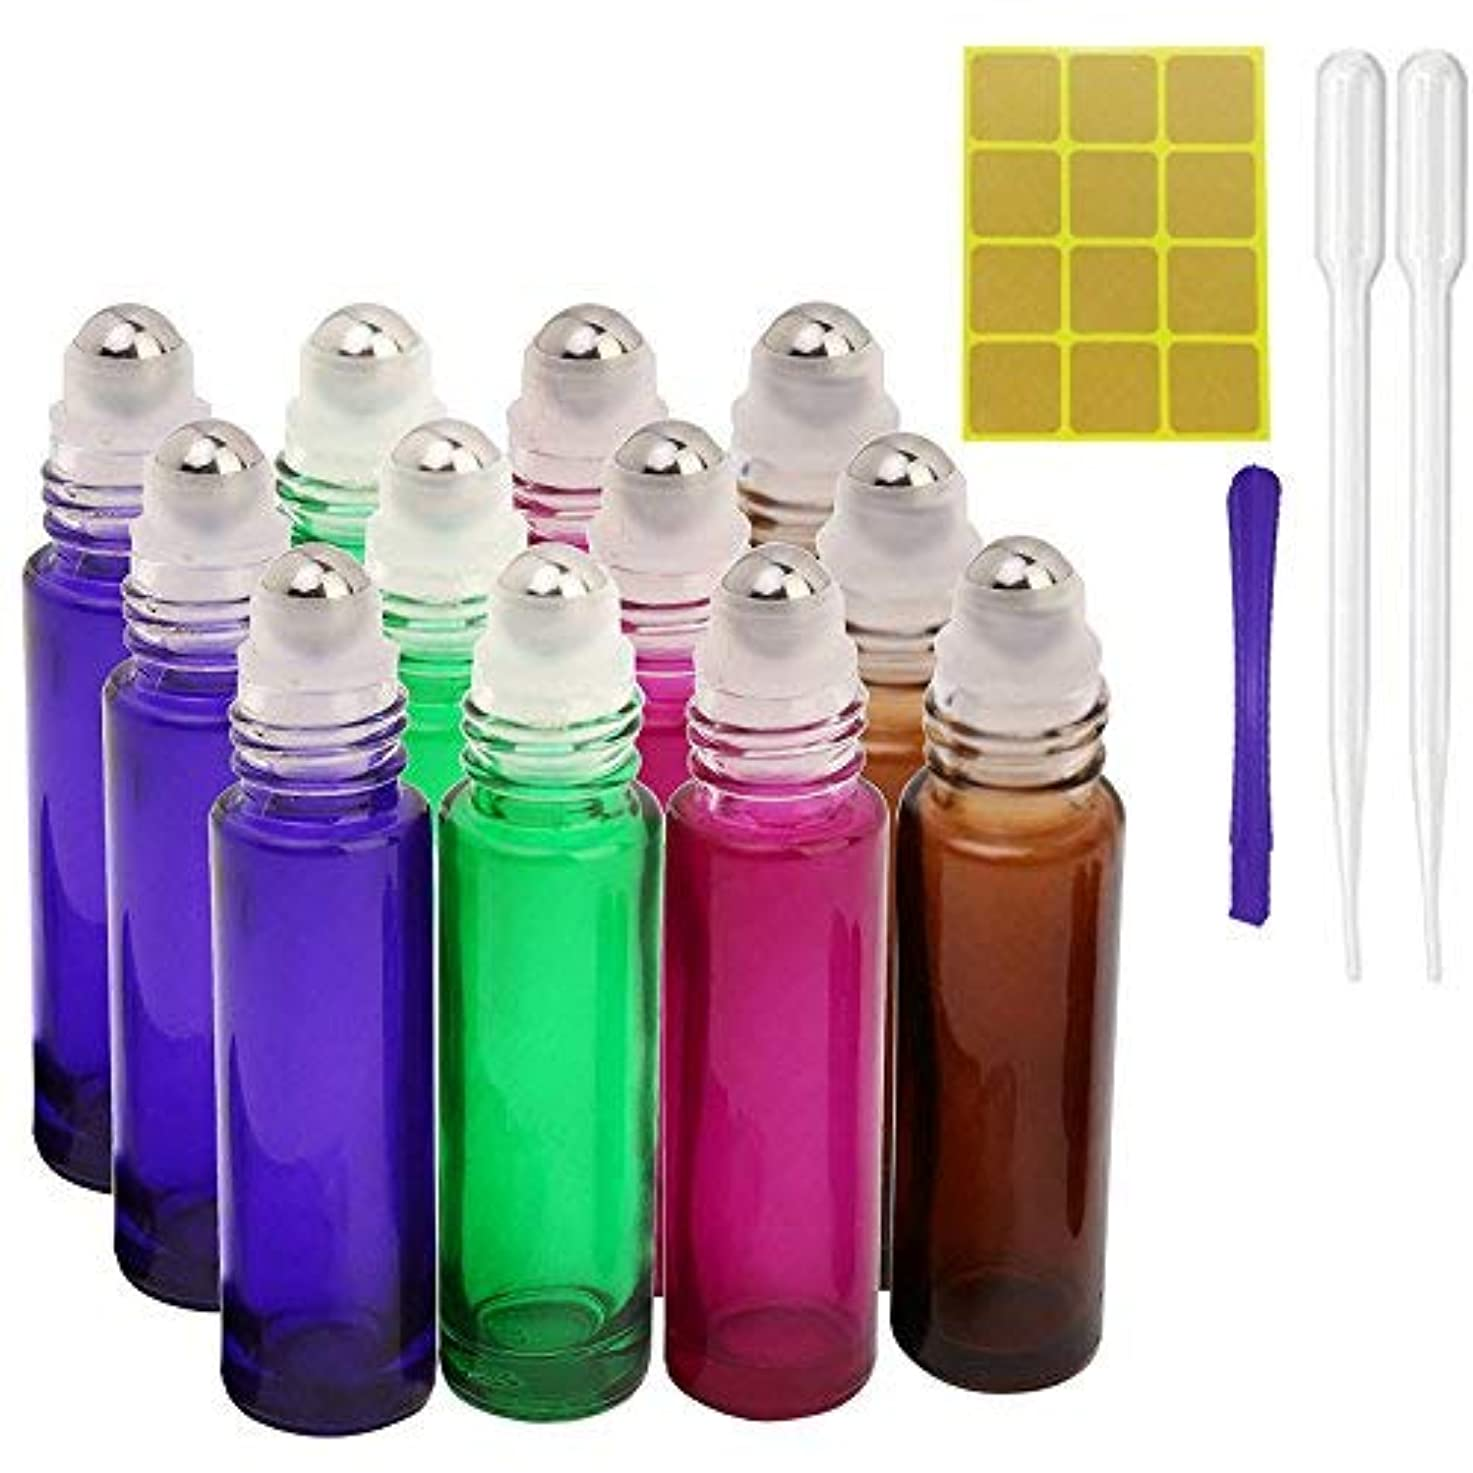 お客様フラフープシャーロットブロンテ12, 10ml Roller Bottles for Essential Oils - Glass Refillable Roller on Bottles with 1 Opener, 2 Droppers, 24...